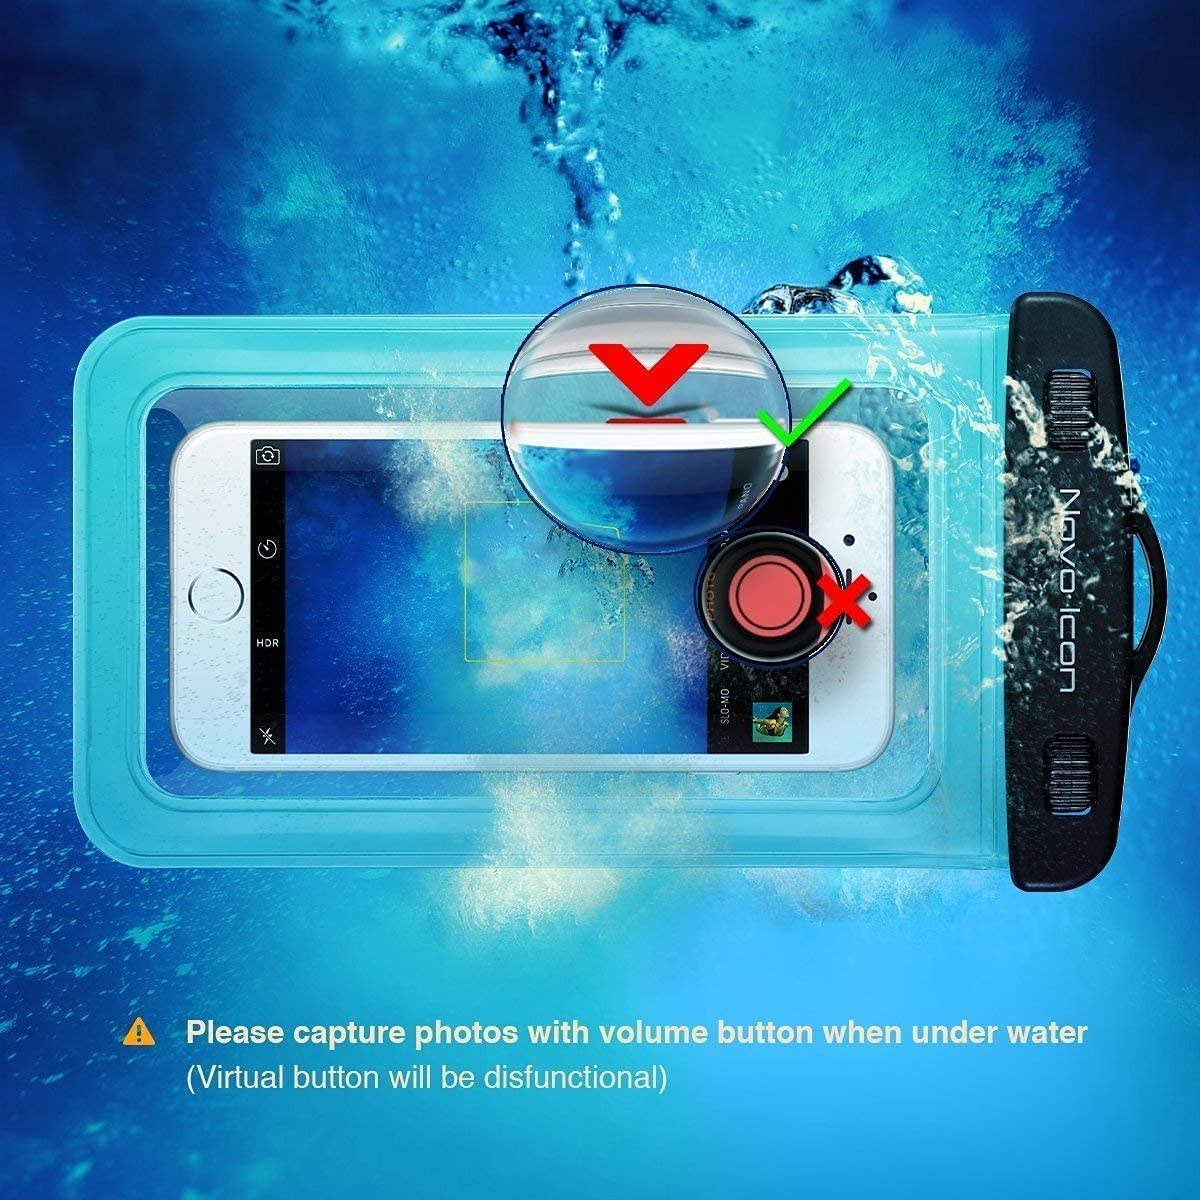 Novo Icon TPU Waterproof Phone Pouch Fully Transparent, IPX8 Cellphone Pouch, Cell Phone Dry Bags, Up to 7'' for iPhone 12 11 Pro Max XS XR X Plus, Galaxy S20+ S10 S9 Note20, (Blue )